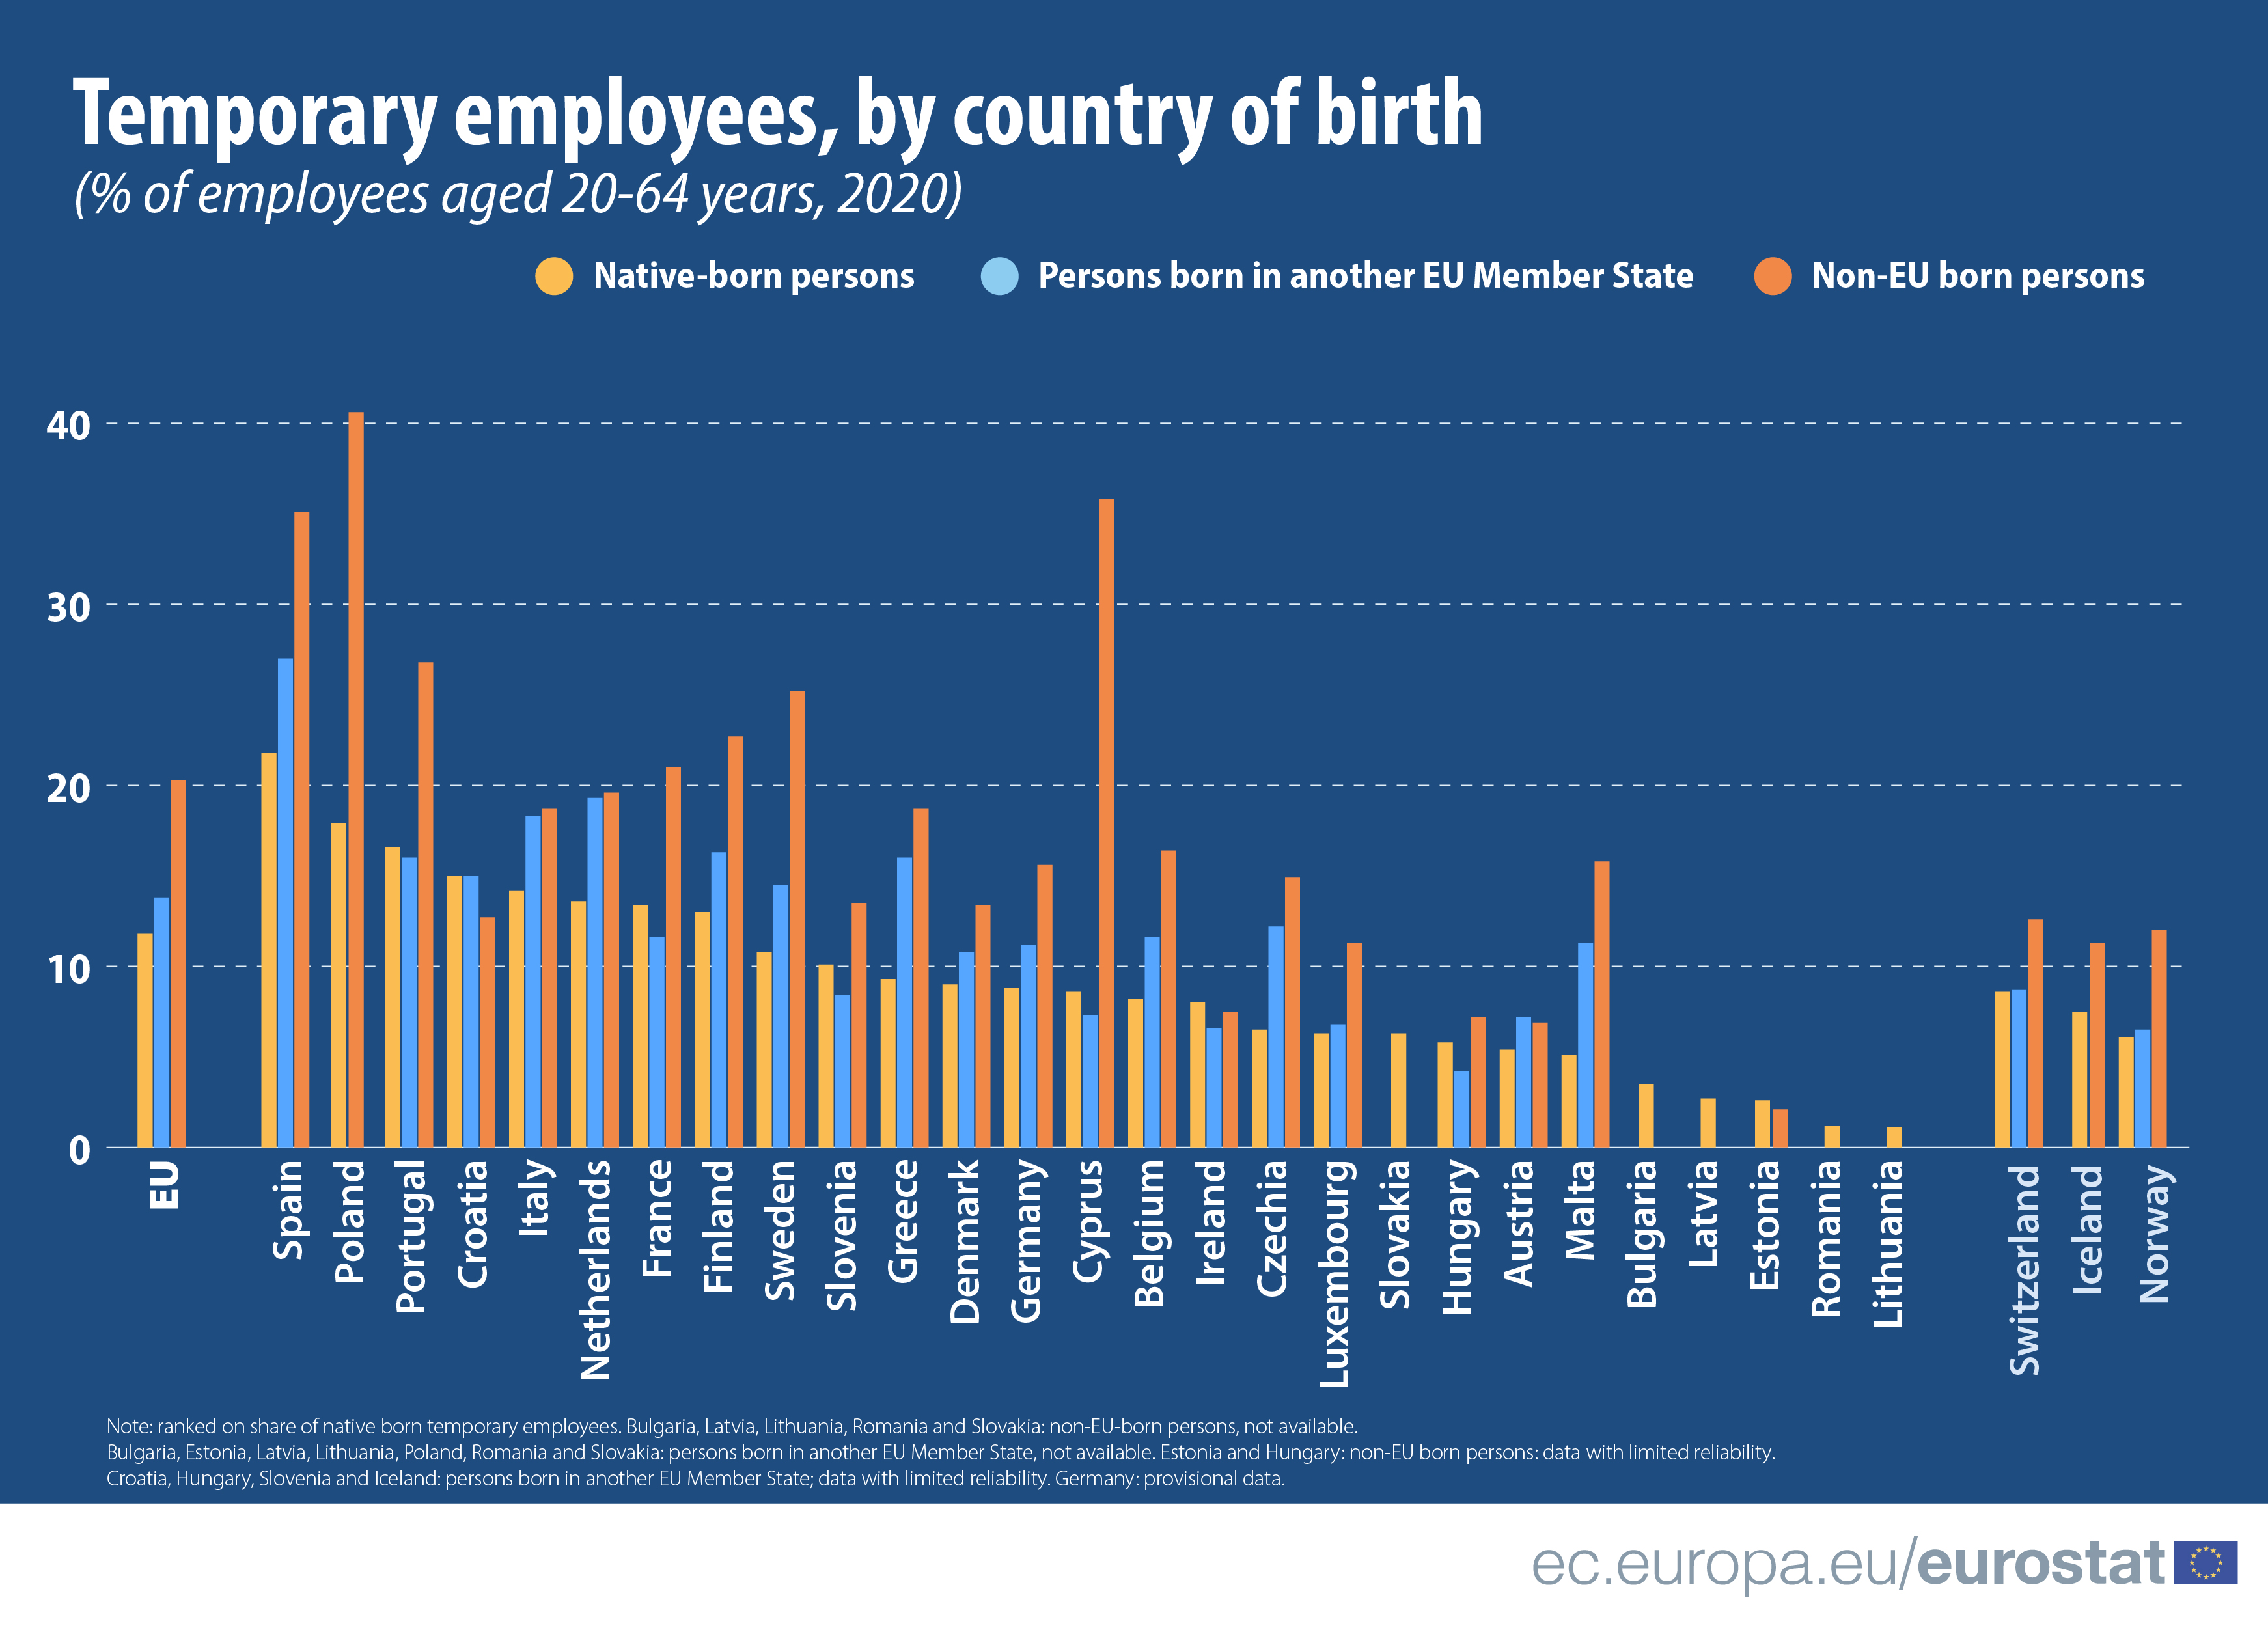 A bar chart showing the number of temporary employees per country by nationality (EU, intra EU, non-EU) for EU countries and EFTA, 2020 data for people aged 20 to 64, in percentage of employees